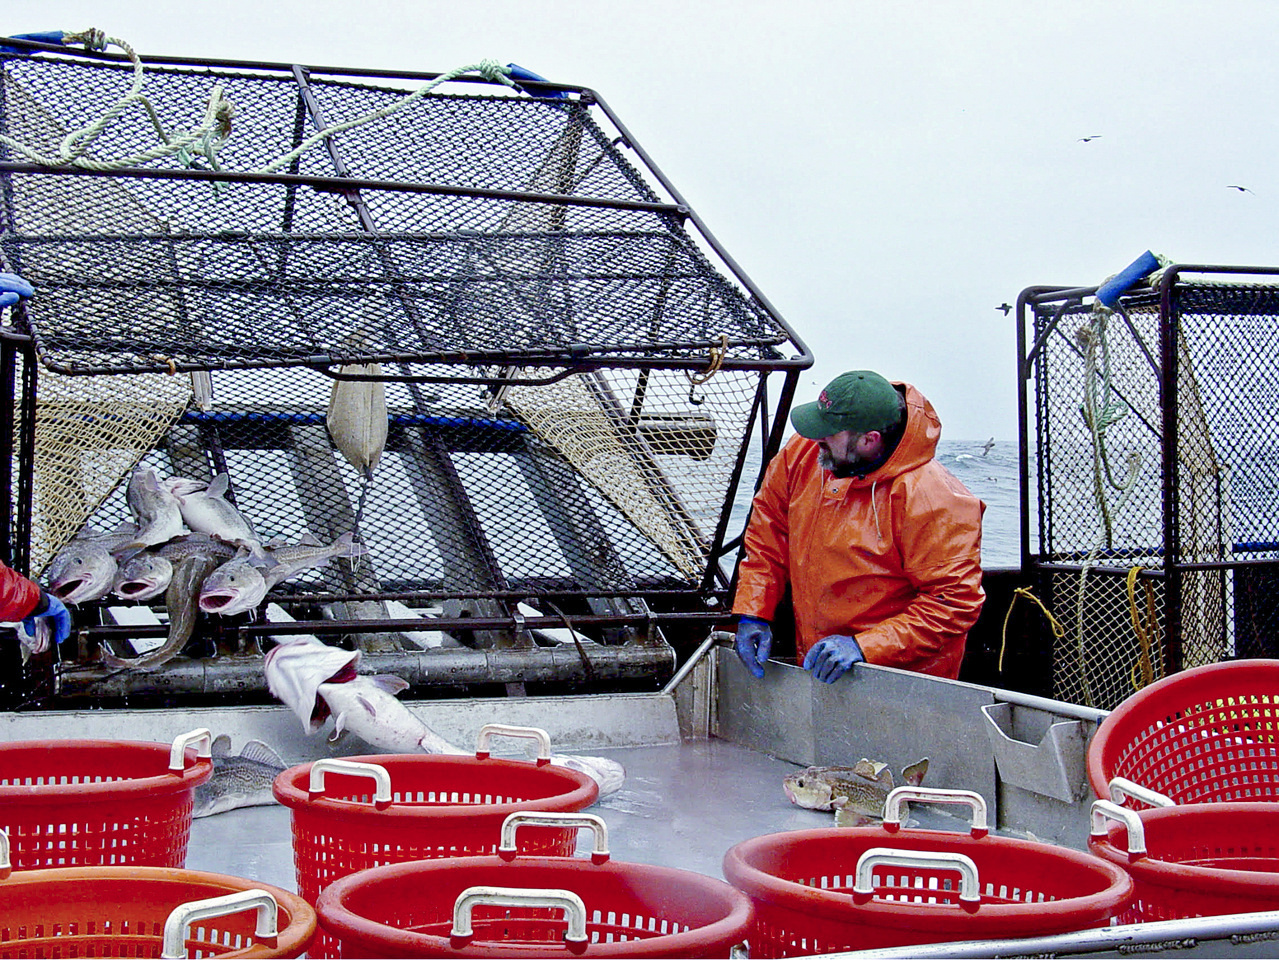 NOAA Fisheries scientists collect Pacific cod samples in the Aleutian Islands.